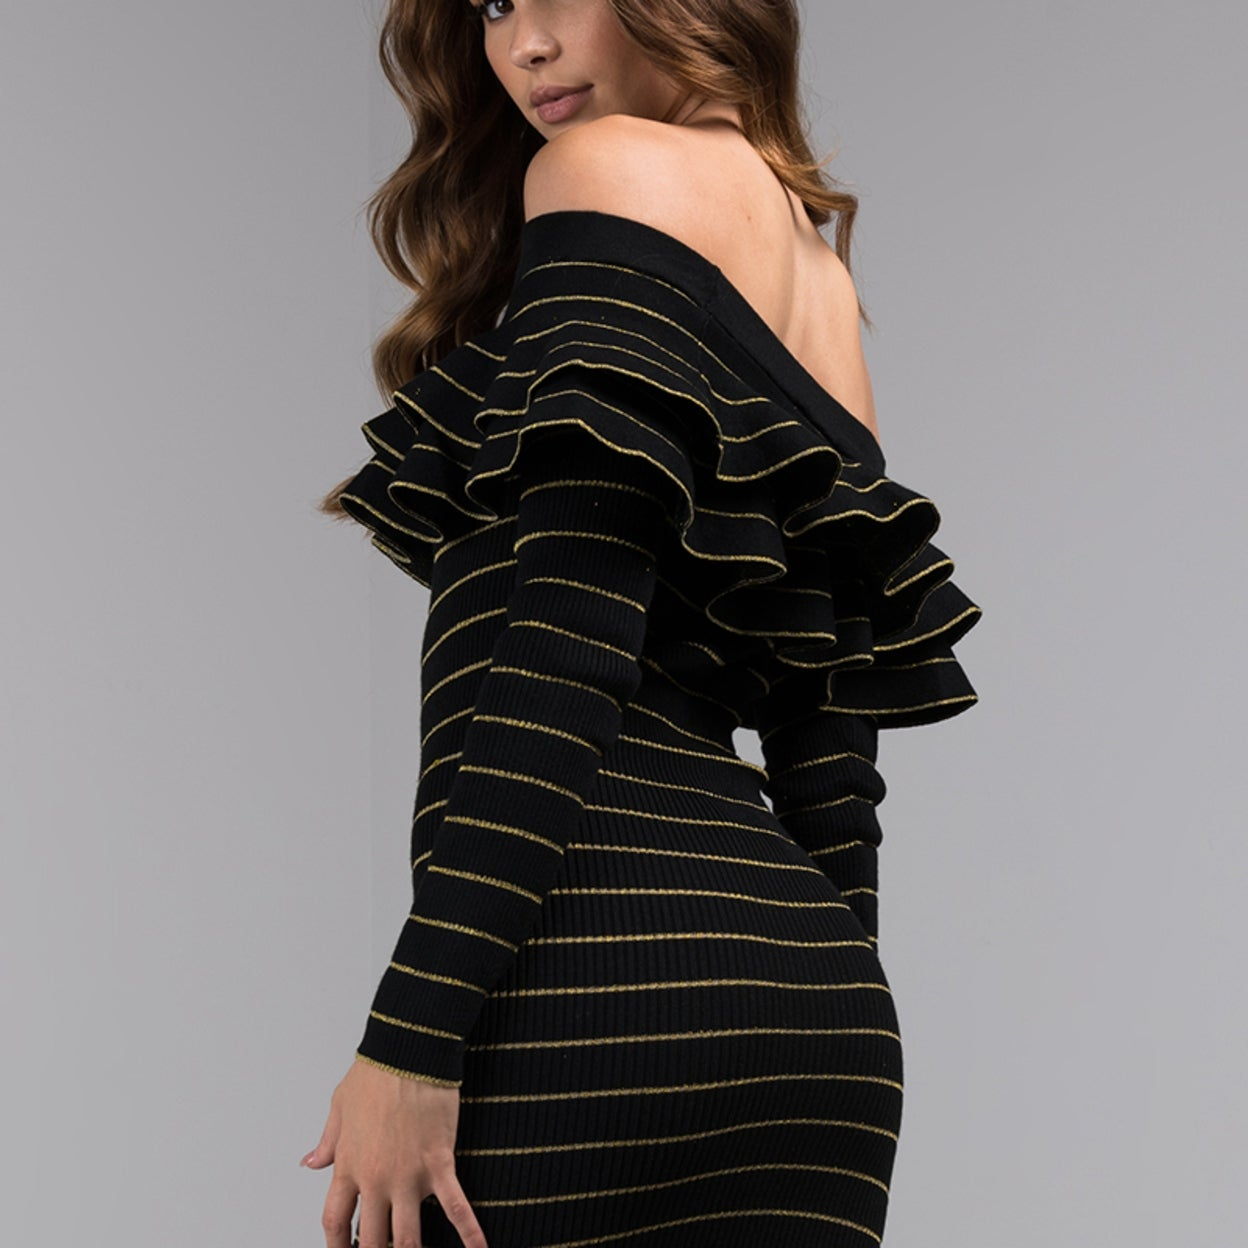 6b9a7b3ea2b9 AKIRA Women's Striped Ribbed Knit Ruffle Off Shoulder Long Sleeve Bodycon  Midi Sweater Dress